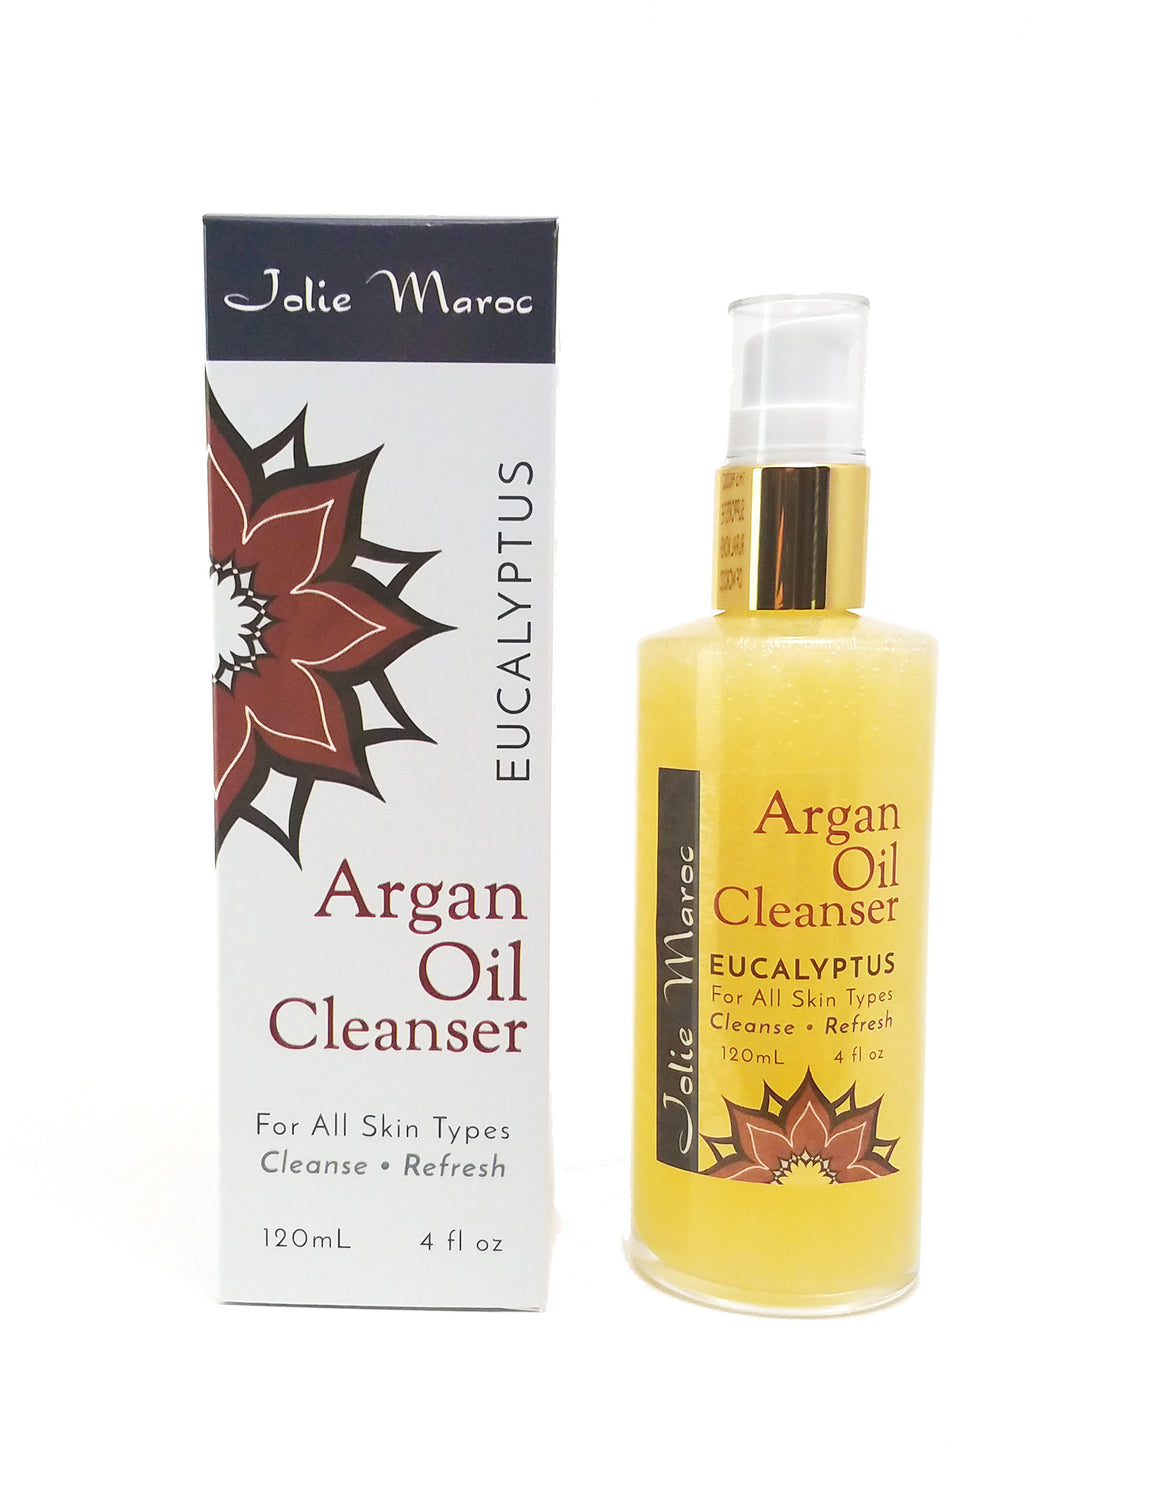 Argan Oil Cleanser - Eucalyptus